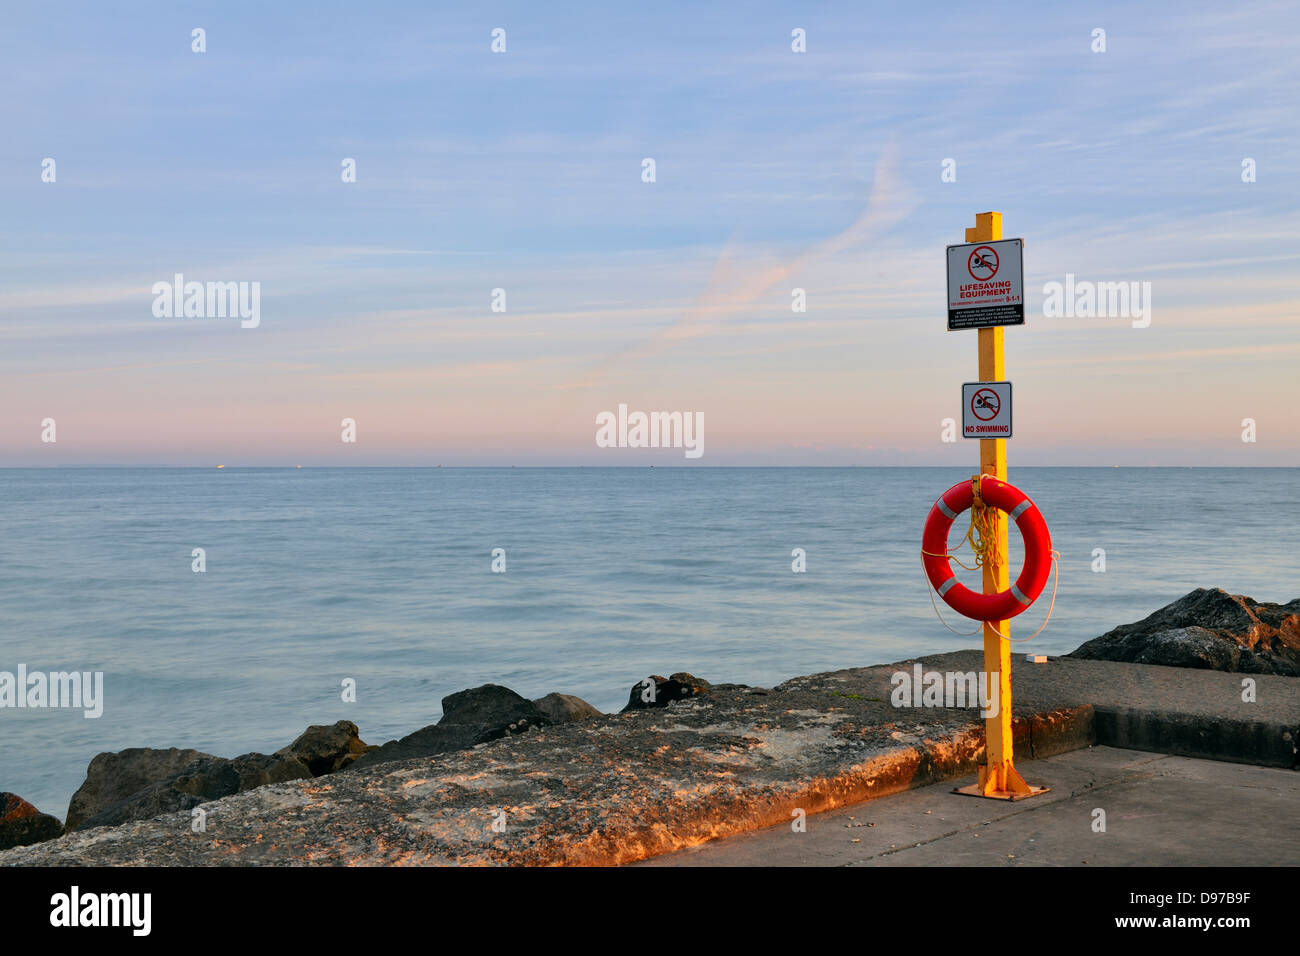 Safety equipment on the Port Dalhousie Pier Port Dalhousie Ontario Canada - Stock Image